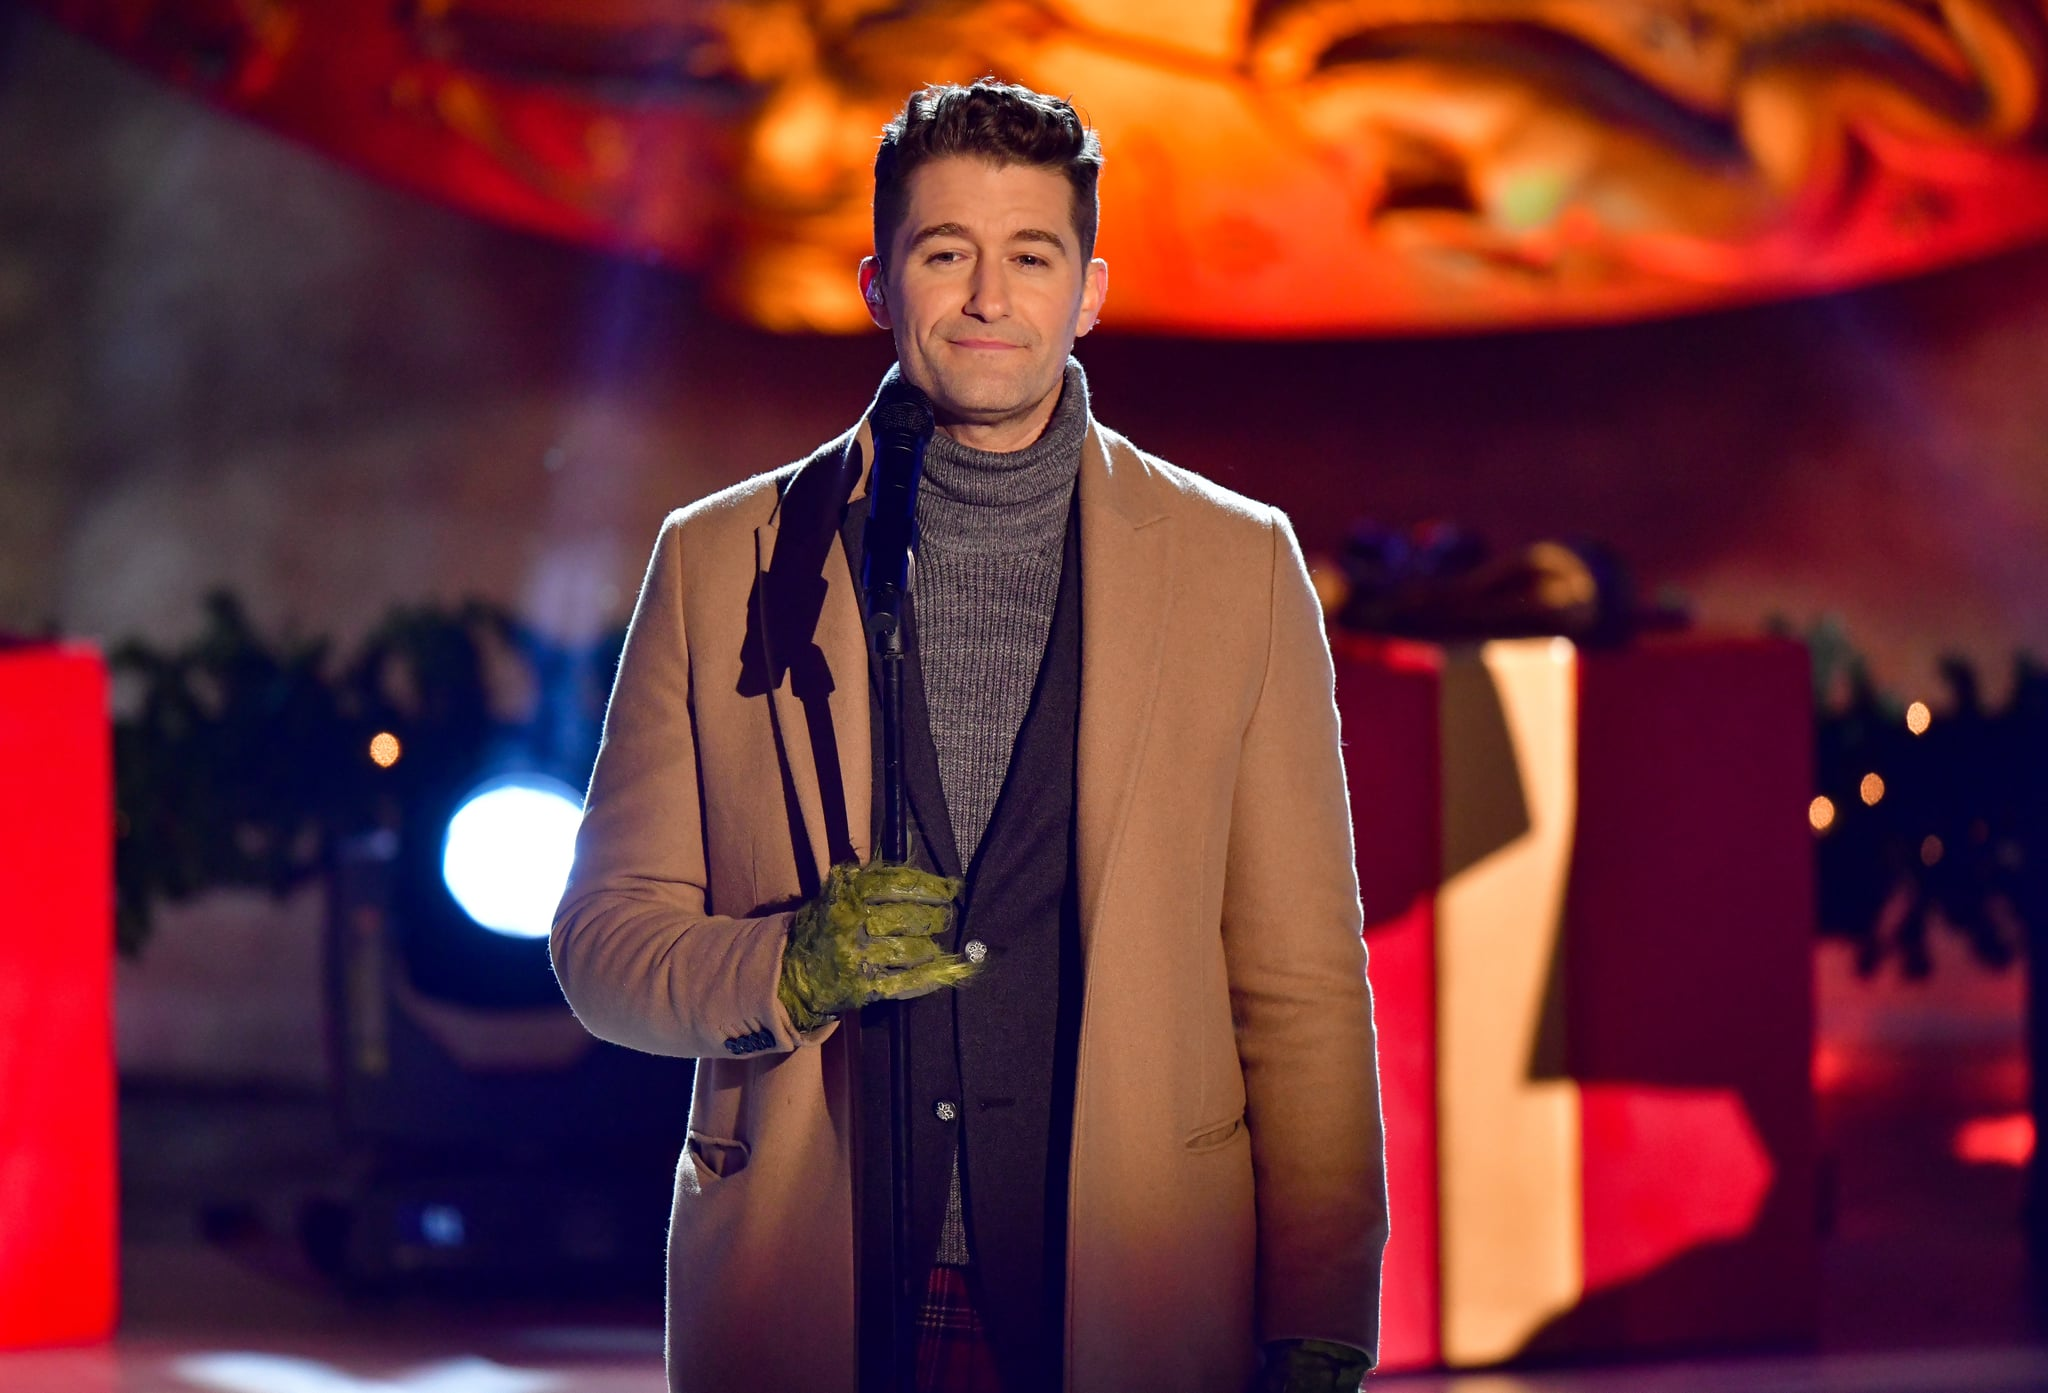 NEW YORK, NY - DECEMBER 01:  Matthew Morrison performs at the 88th Annual Rockefeller Centre Christmas Tree Lighting Pre-Tape at Rockefeller Centre on December 1, 2020 in New York City.  (Photo by James Devaney/GC Images)